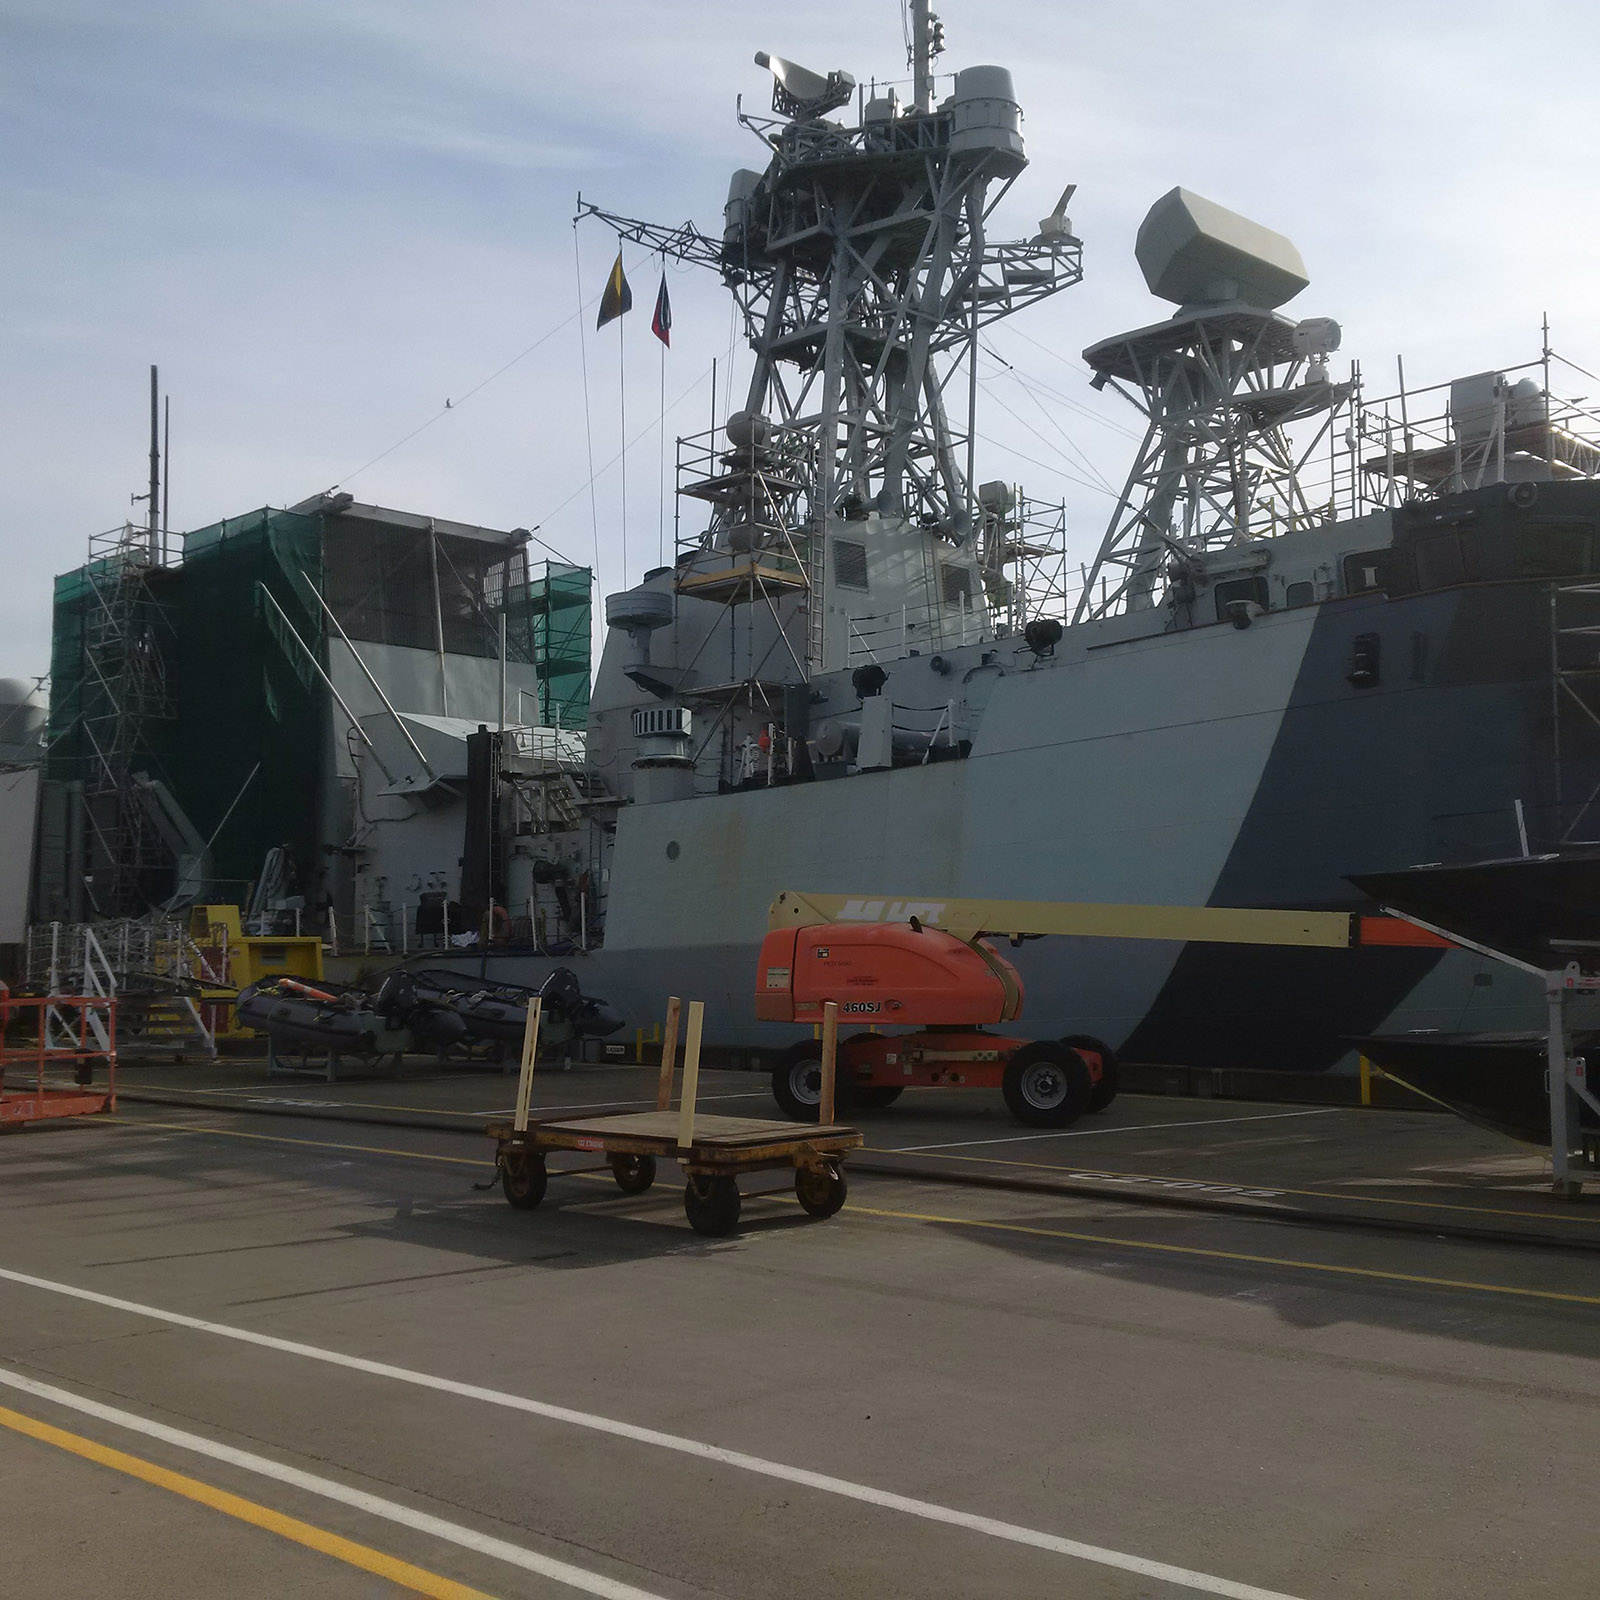 Work on HMCS Regina, which will be painted in a white and blue geometric scheme, is currently underway at CFB Esquimalt, and is expected to be complete by mid-October.